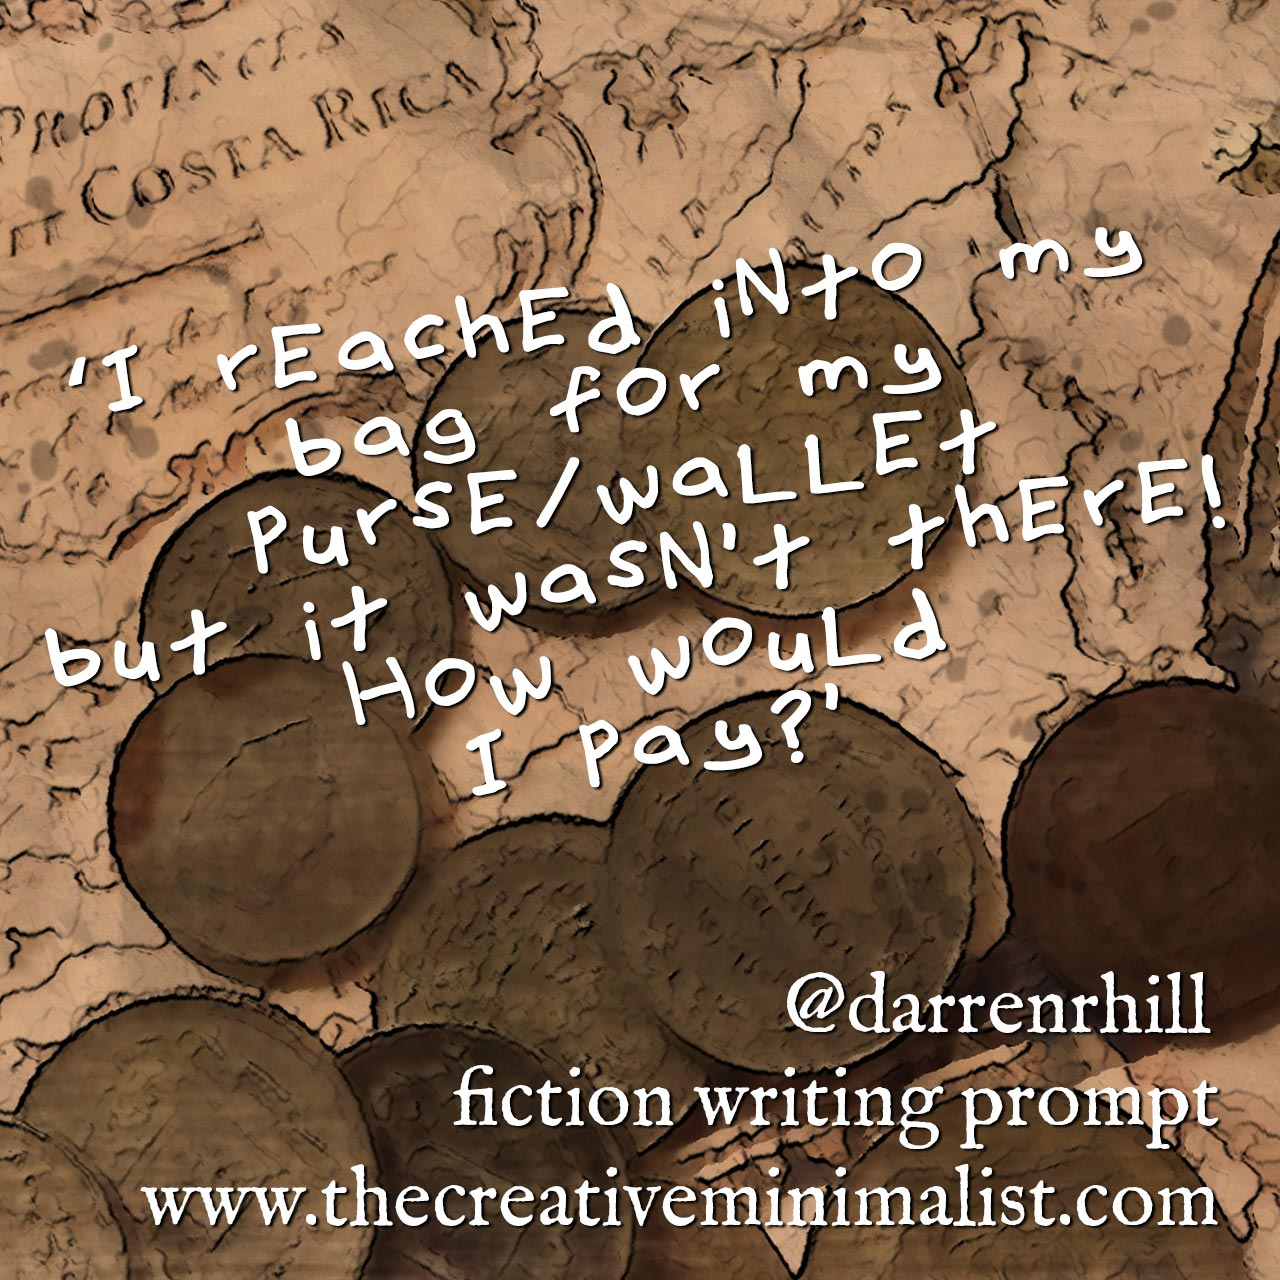 'I reached into my bag for my purse/wallet but it wasn't there! How would I pay?' Friday Fiction Writing Prompt